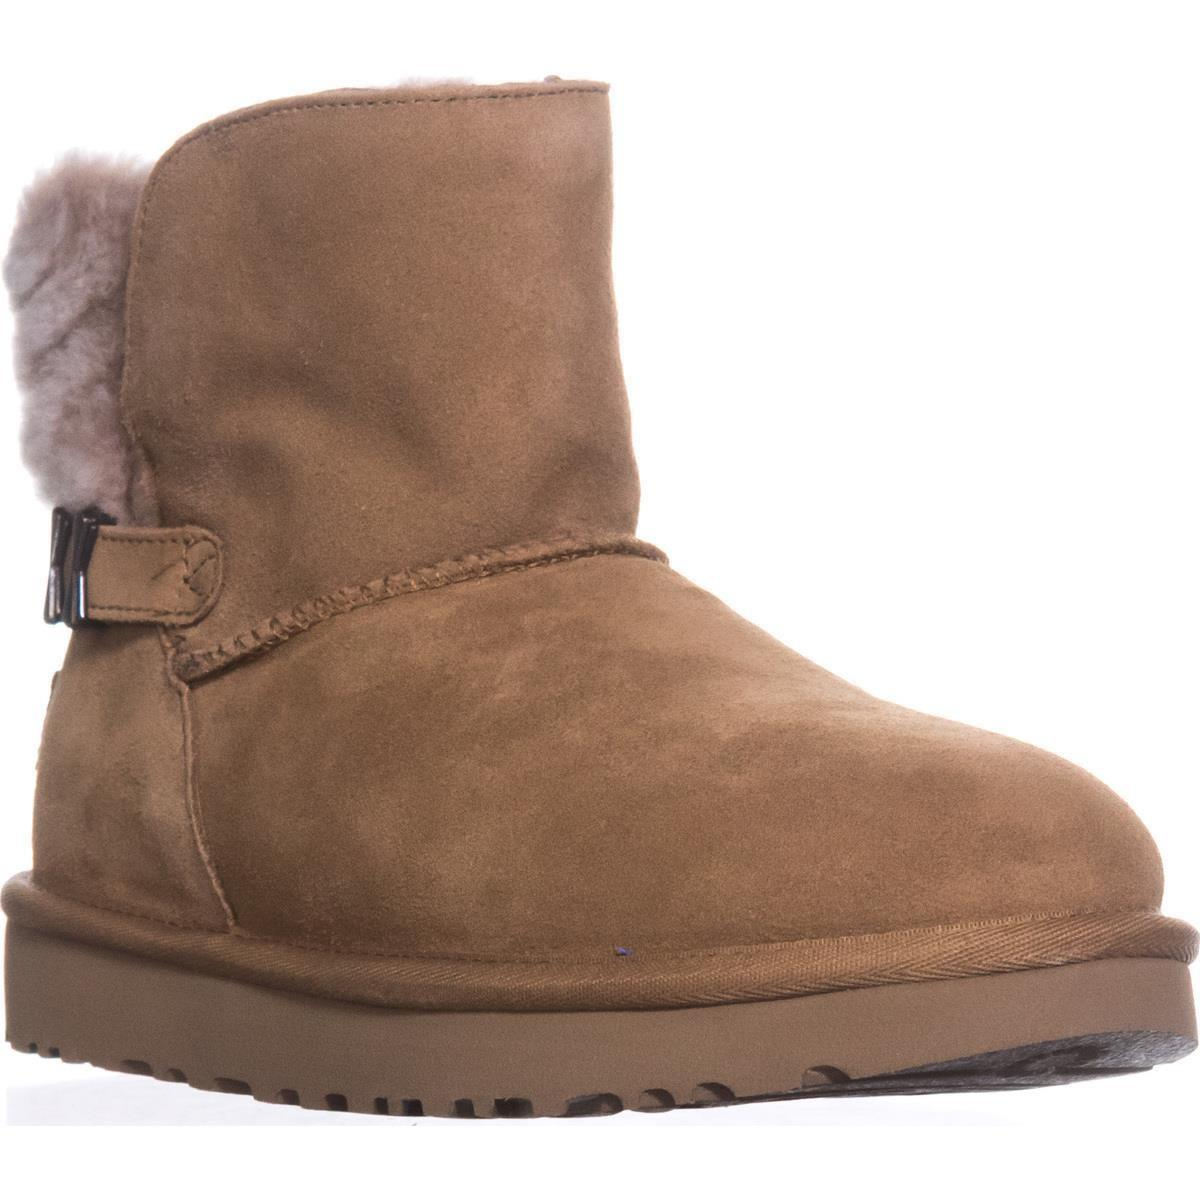 664d91eee2f Ugg - Brown Ugg Adria Winter Ankle Boots - Lyst